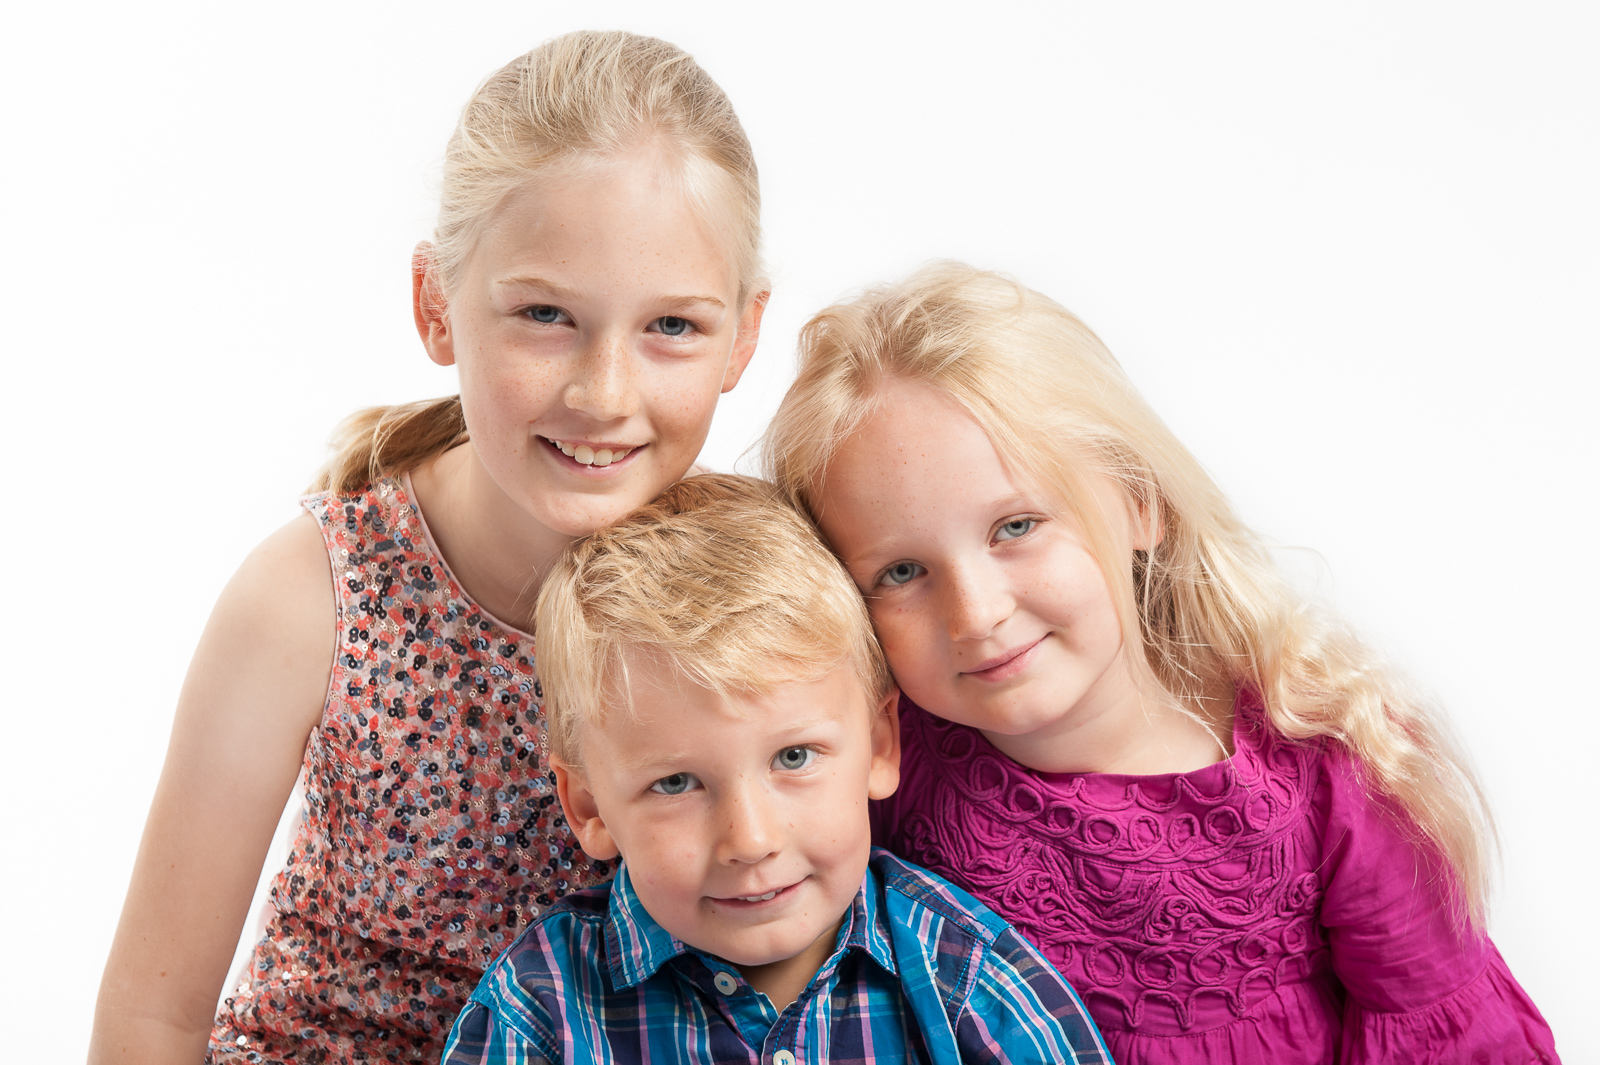 portrait photographer, portrait photography derby, Family portrait of three young children, photographed in the studio